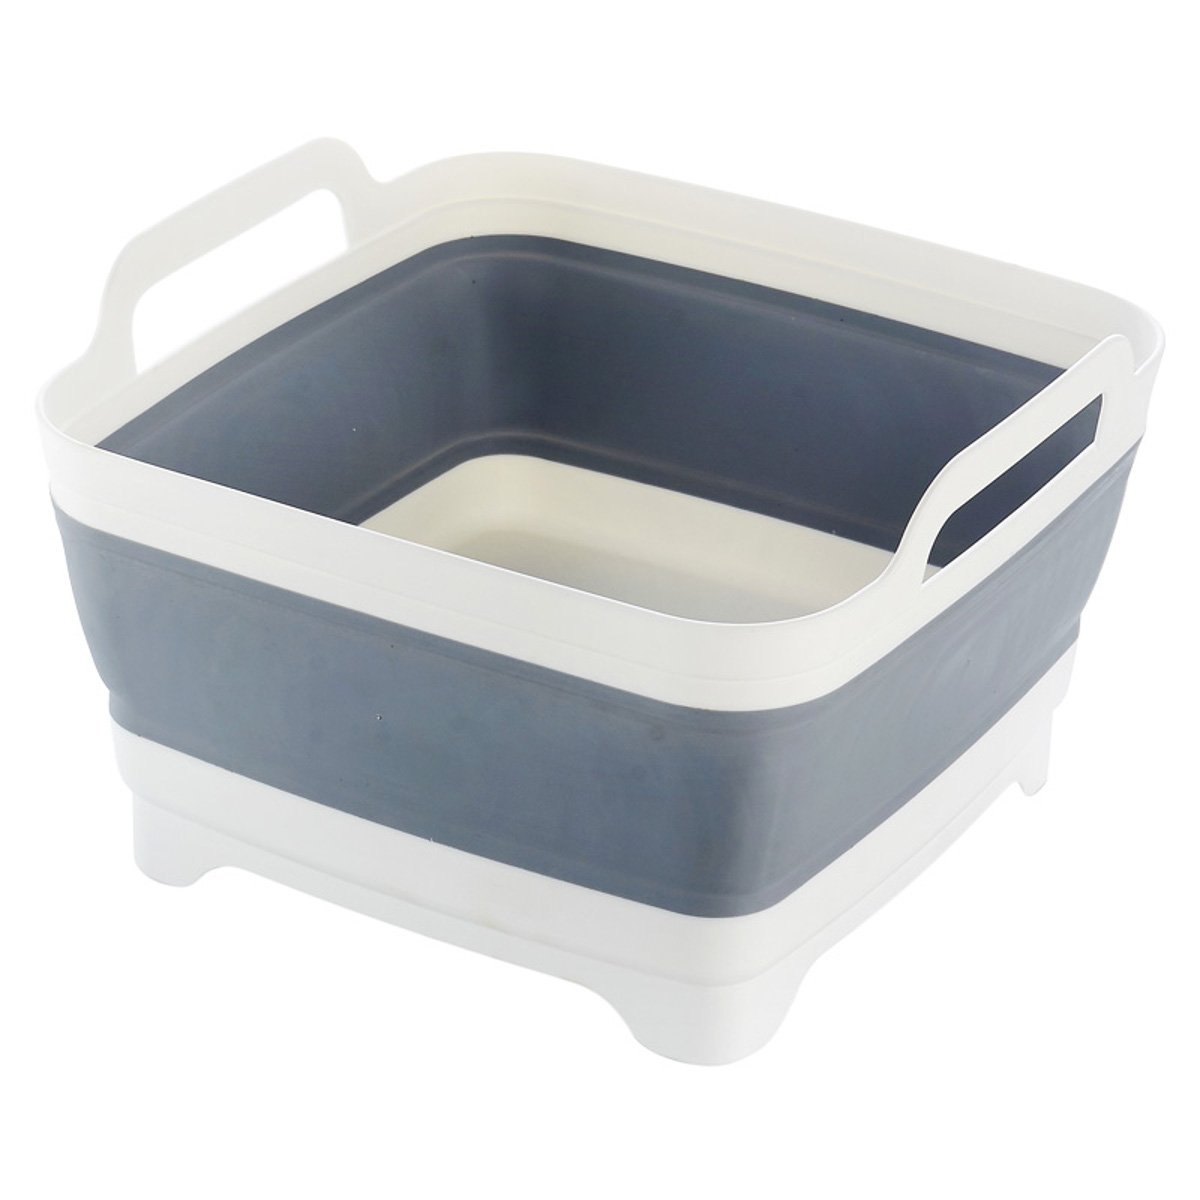 Space Saving Collapsible Sink Grey Silicone for Home Caravan Boat RV Camping